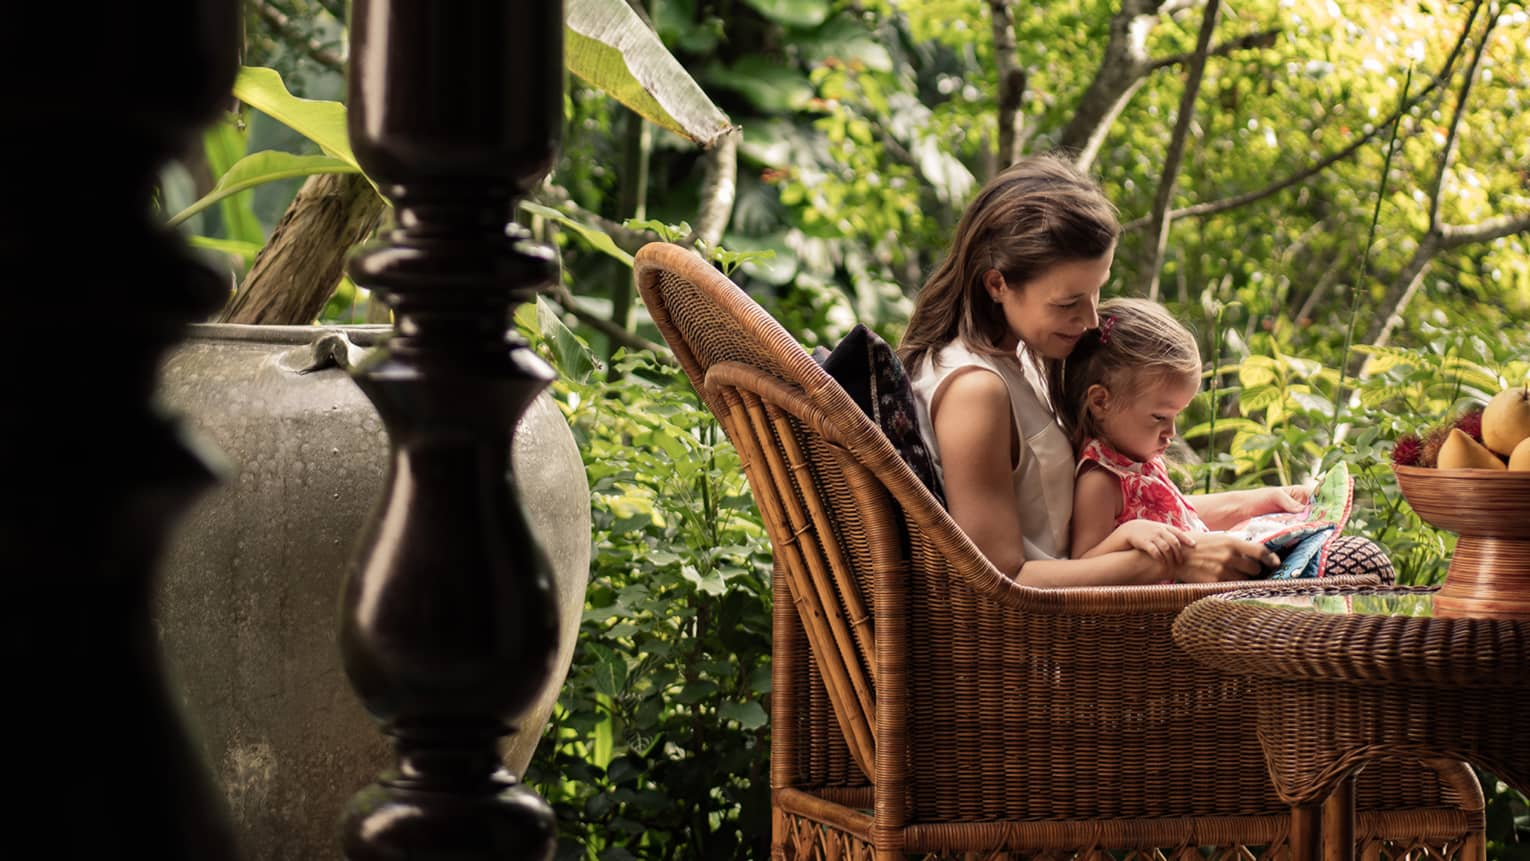 Woman read to young girl on her lap in large wicker armchair on patio by trees